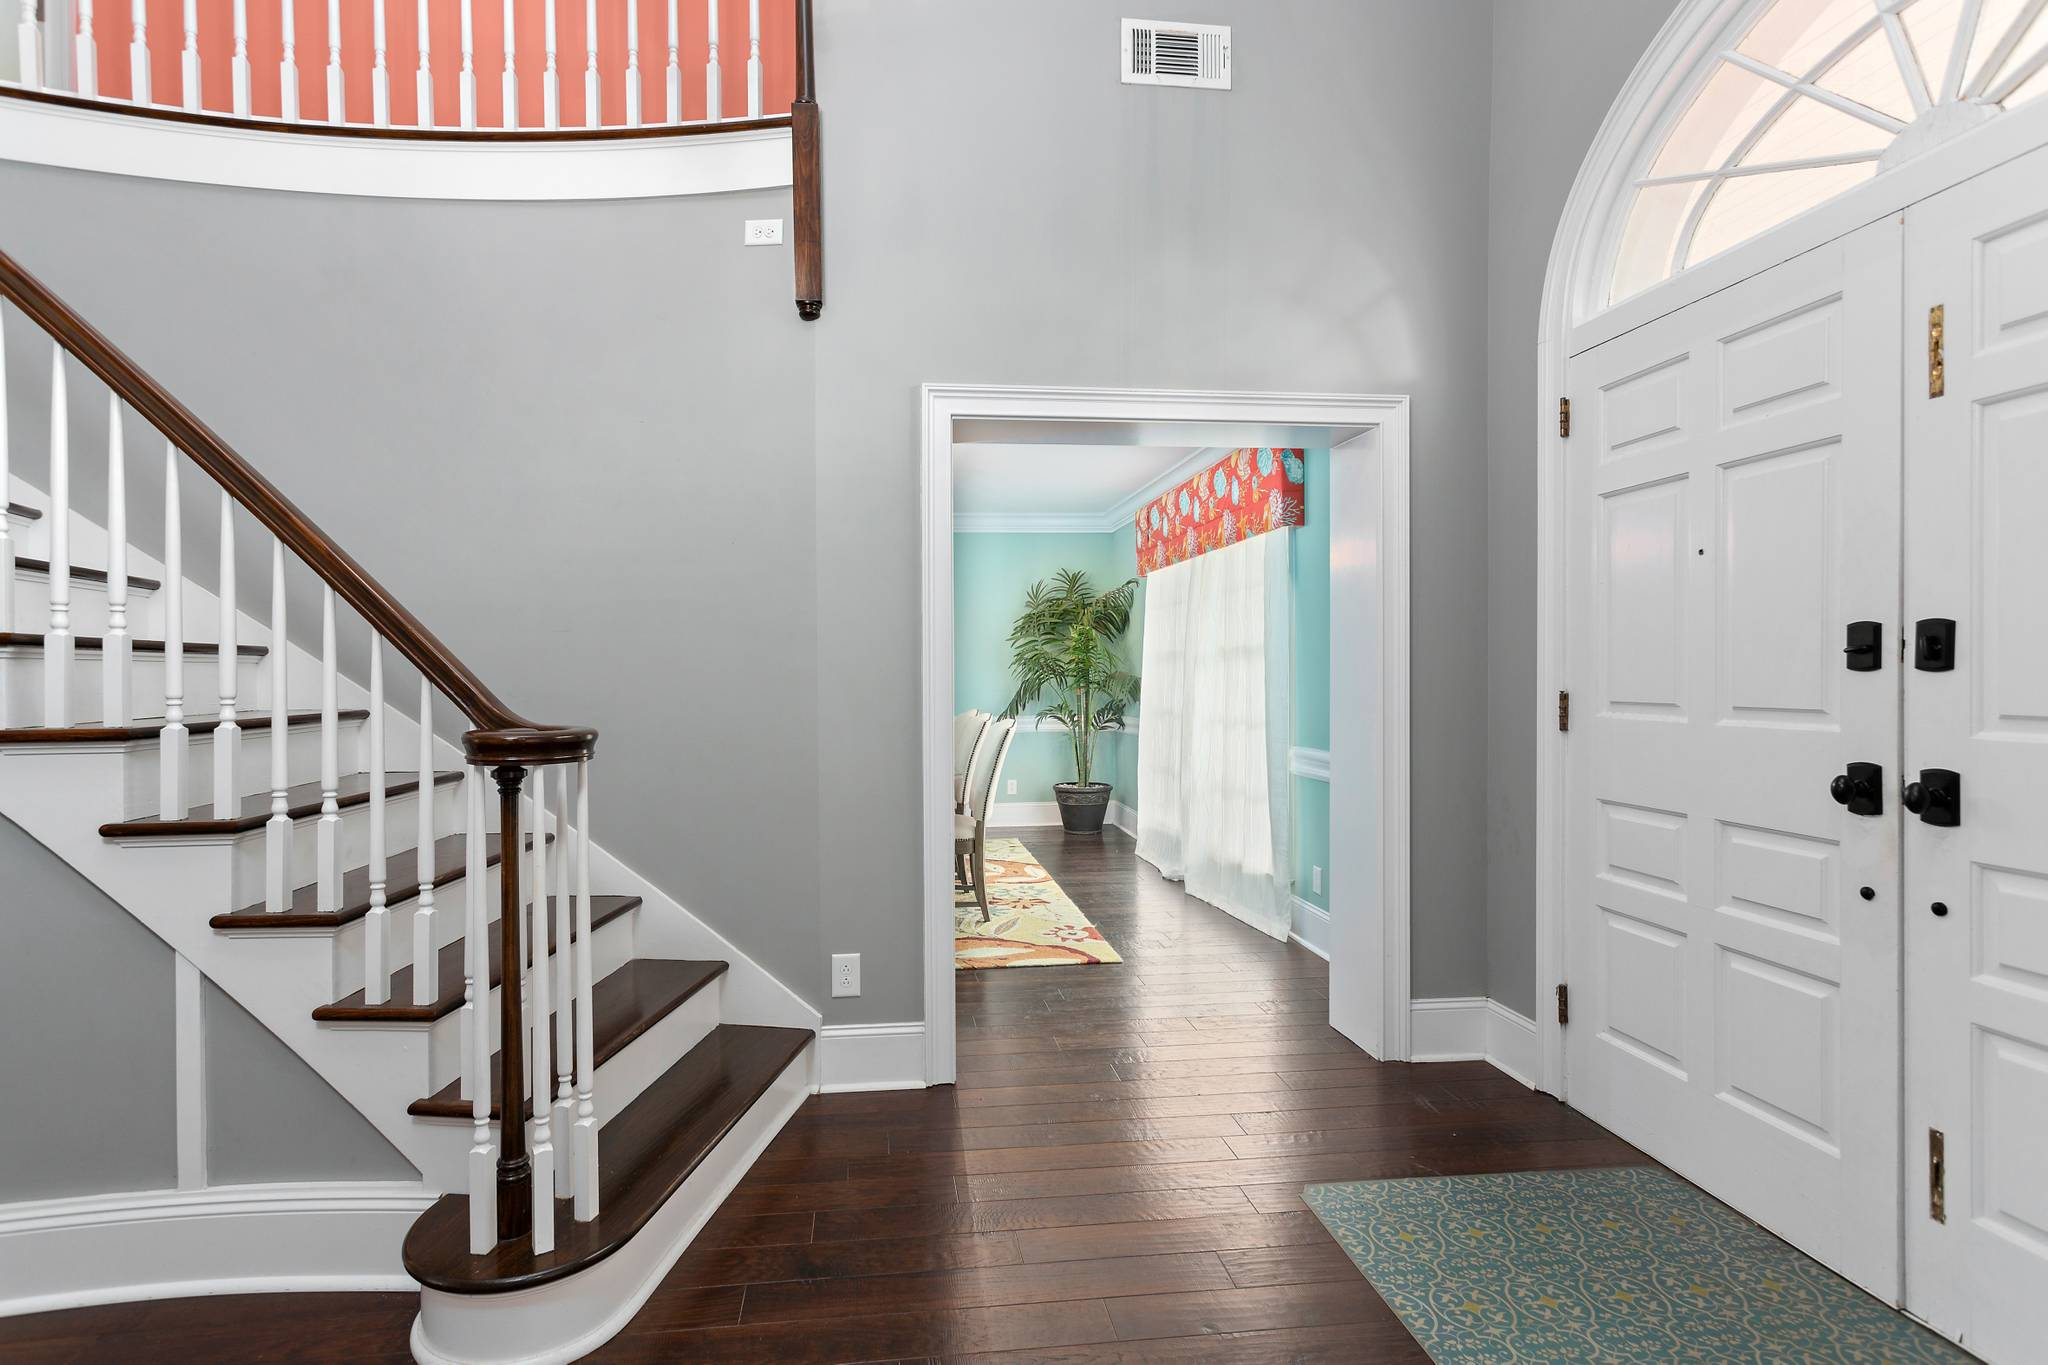 Entrance at 154 Gould St on St Simons Island